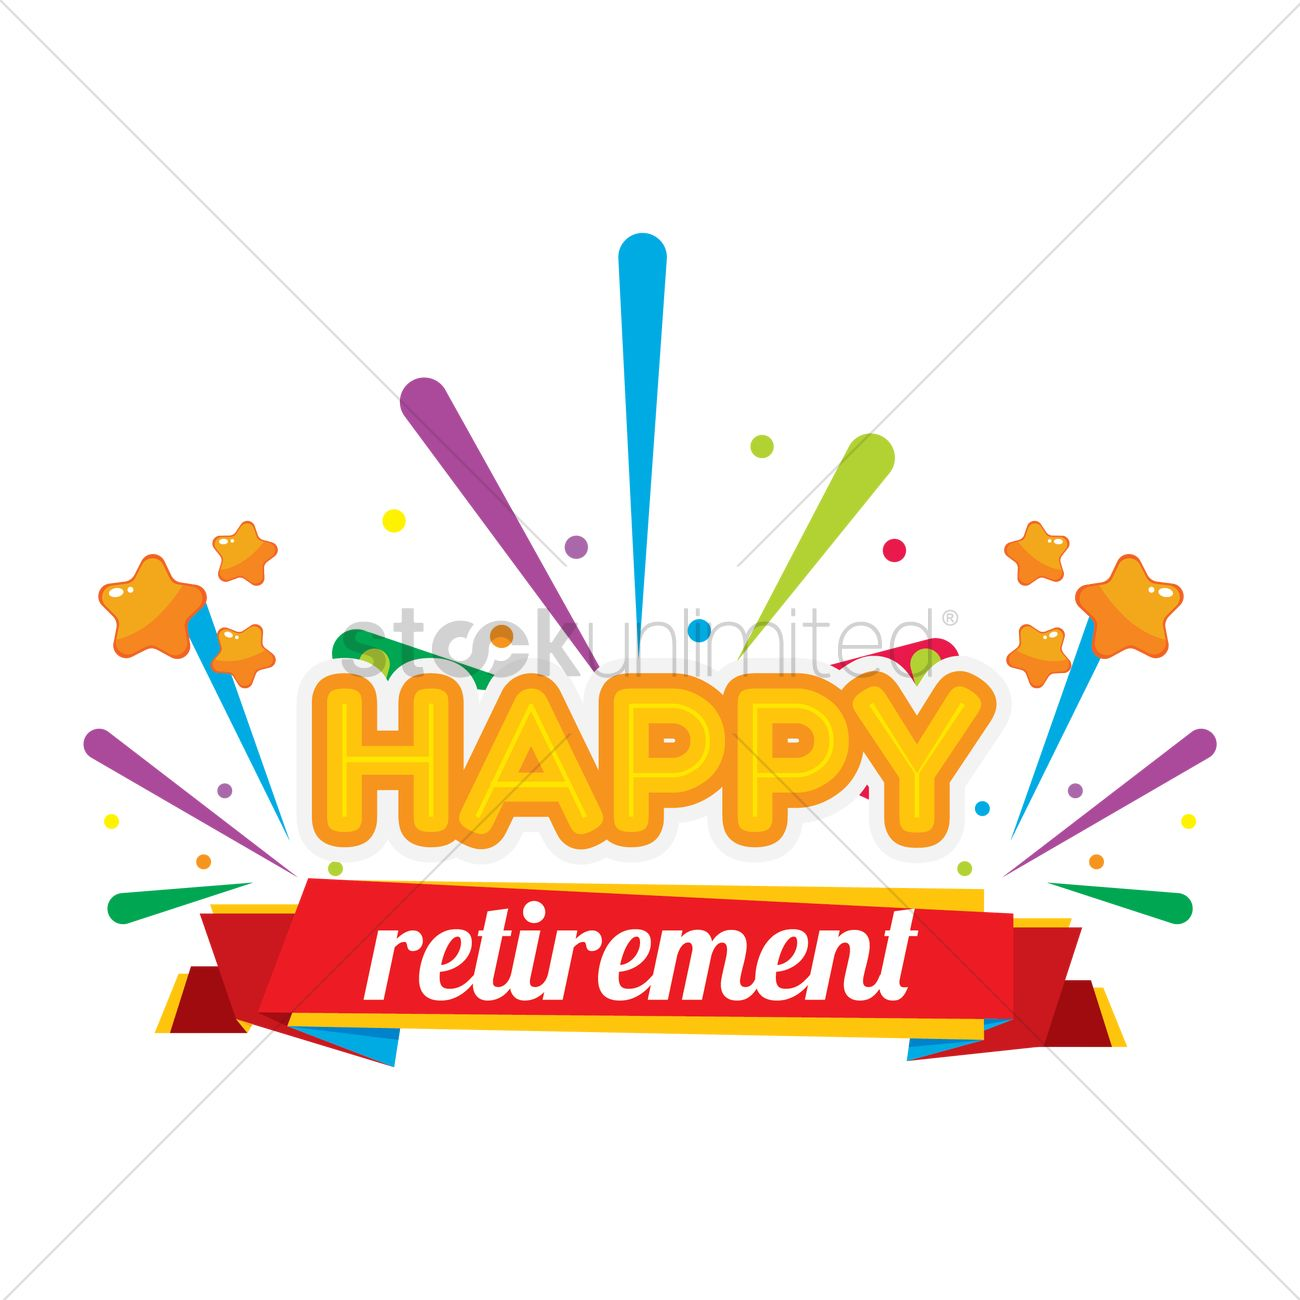 Happy retirement card Vector Image - 1707658 | StockUnlimited